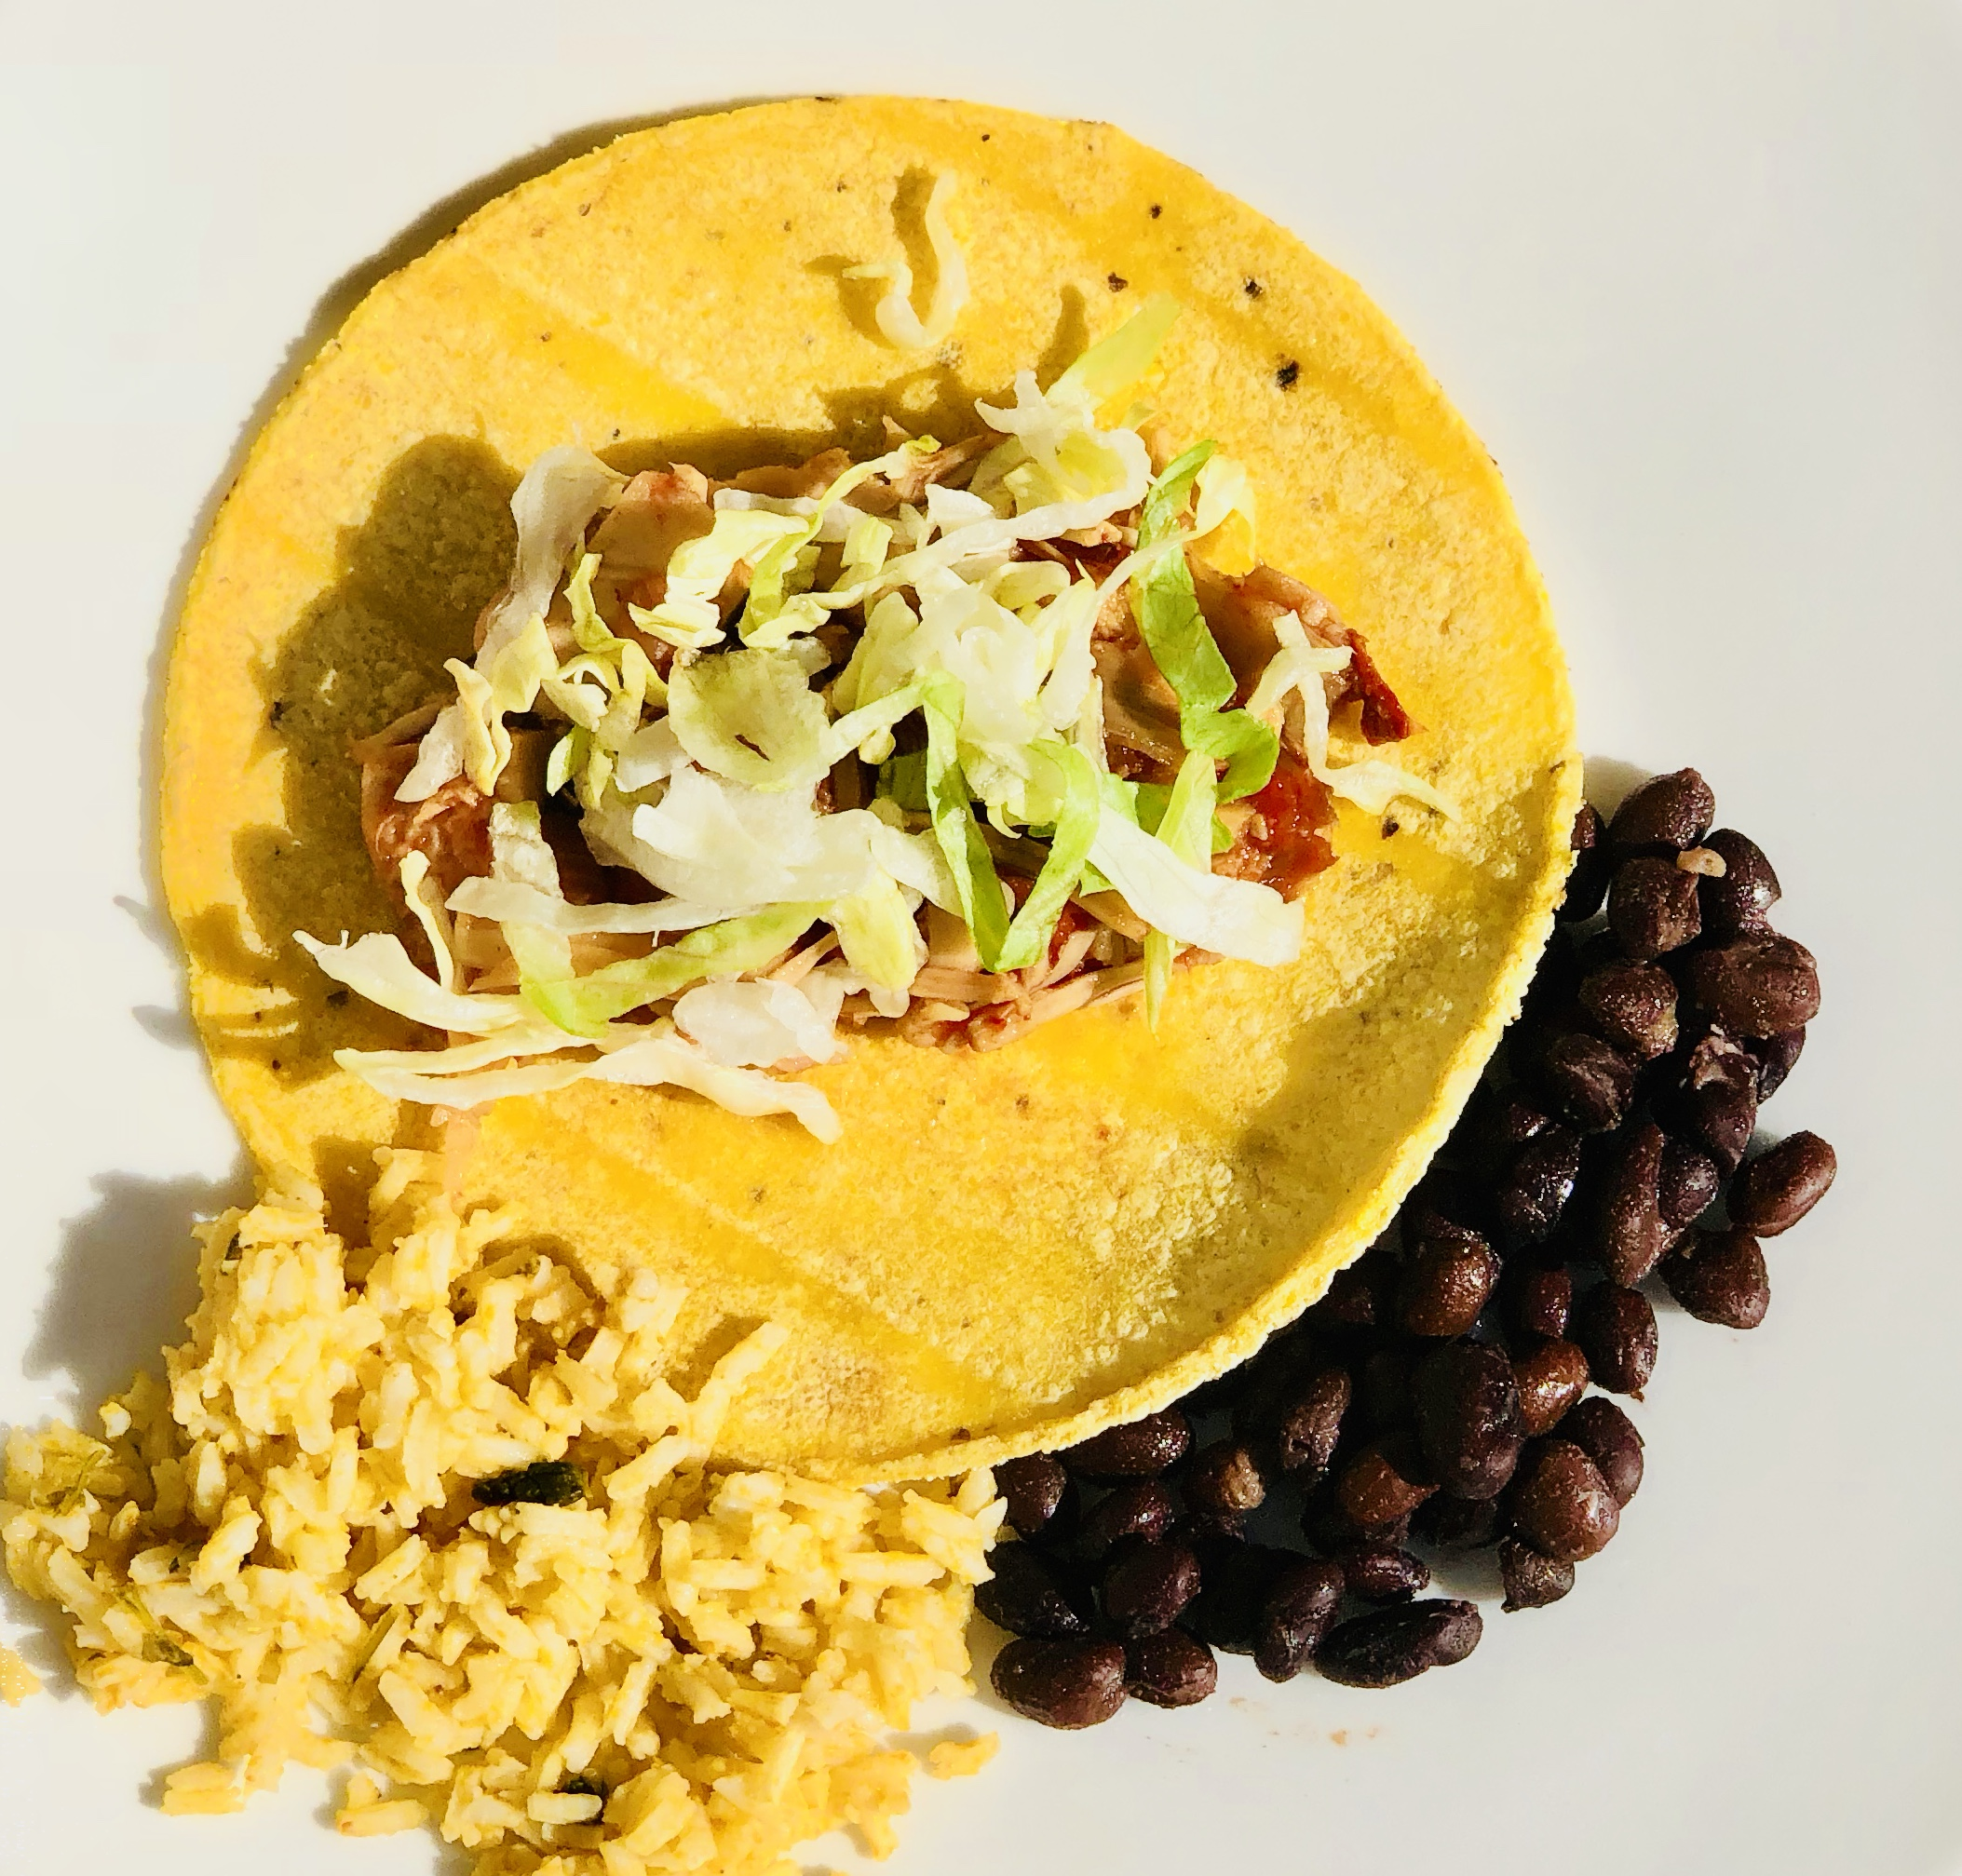 Easy Vegan Slow cooker Jackfruit Tacos